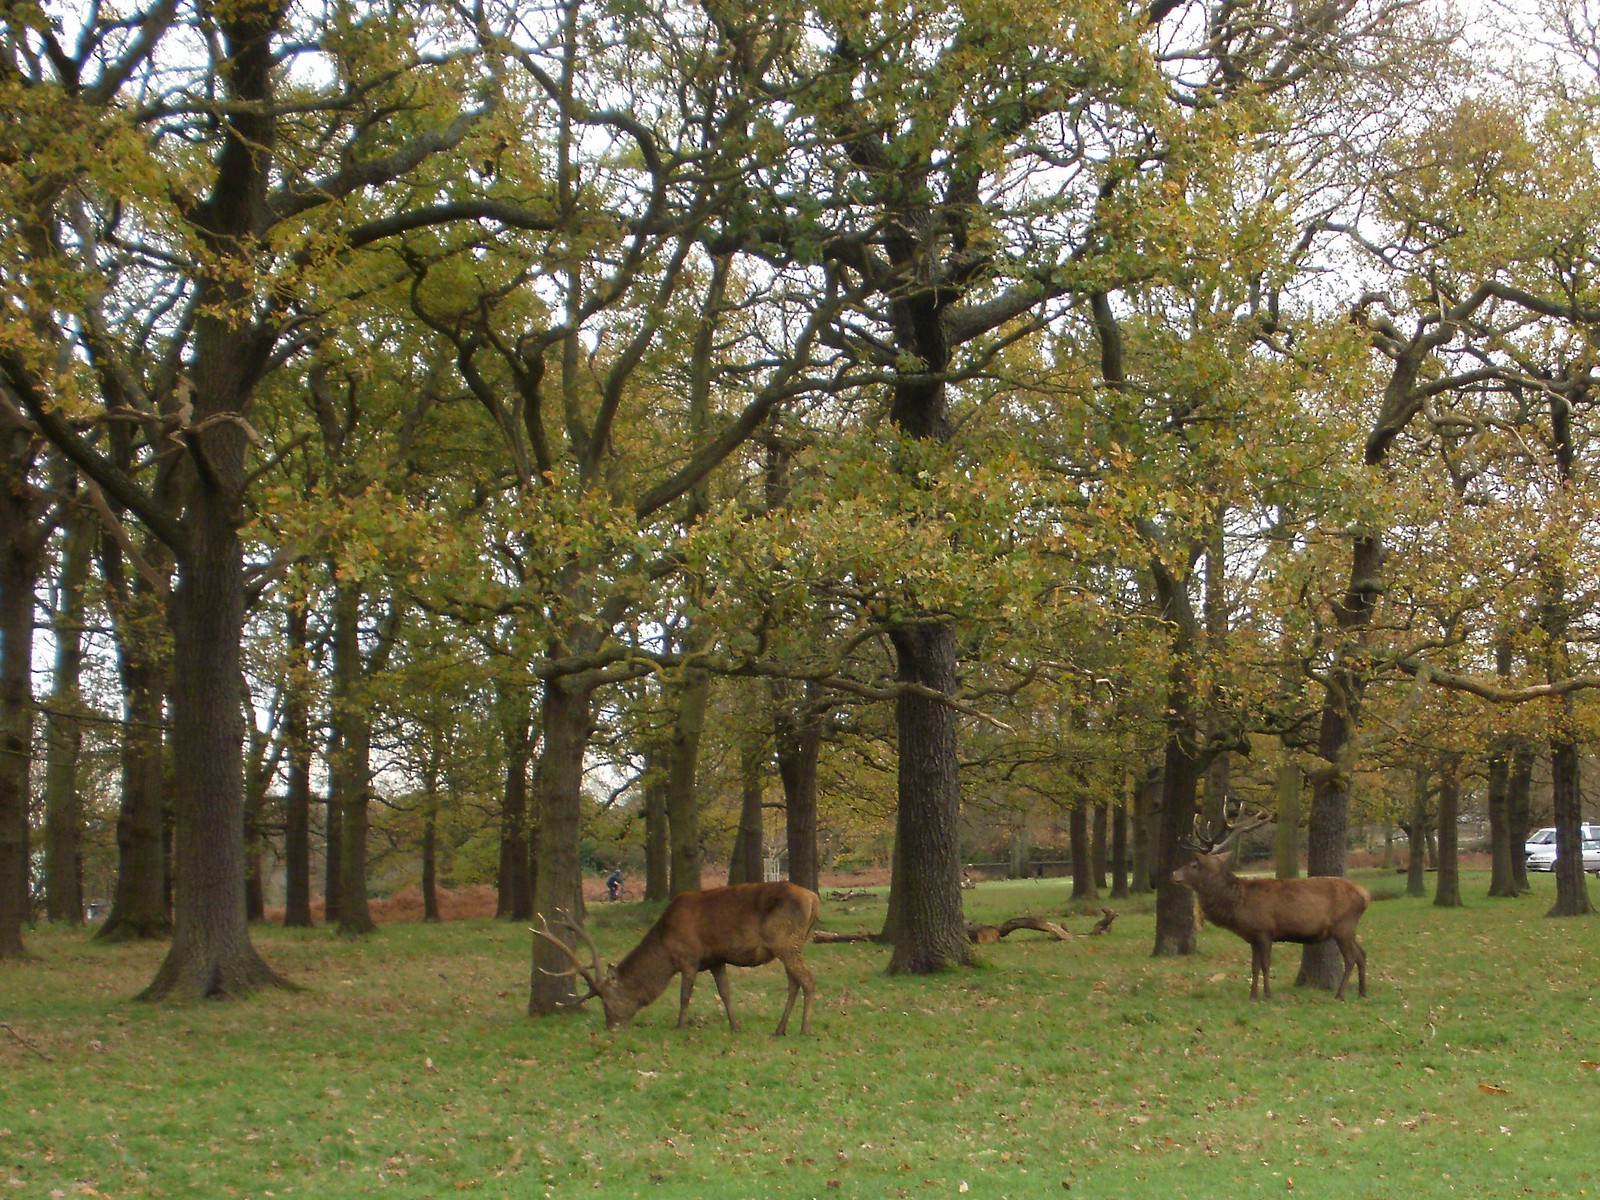 Stags Richmond Park OLYMPUS DIGITAL CAMERA